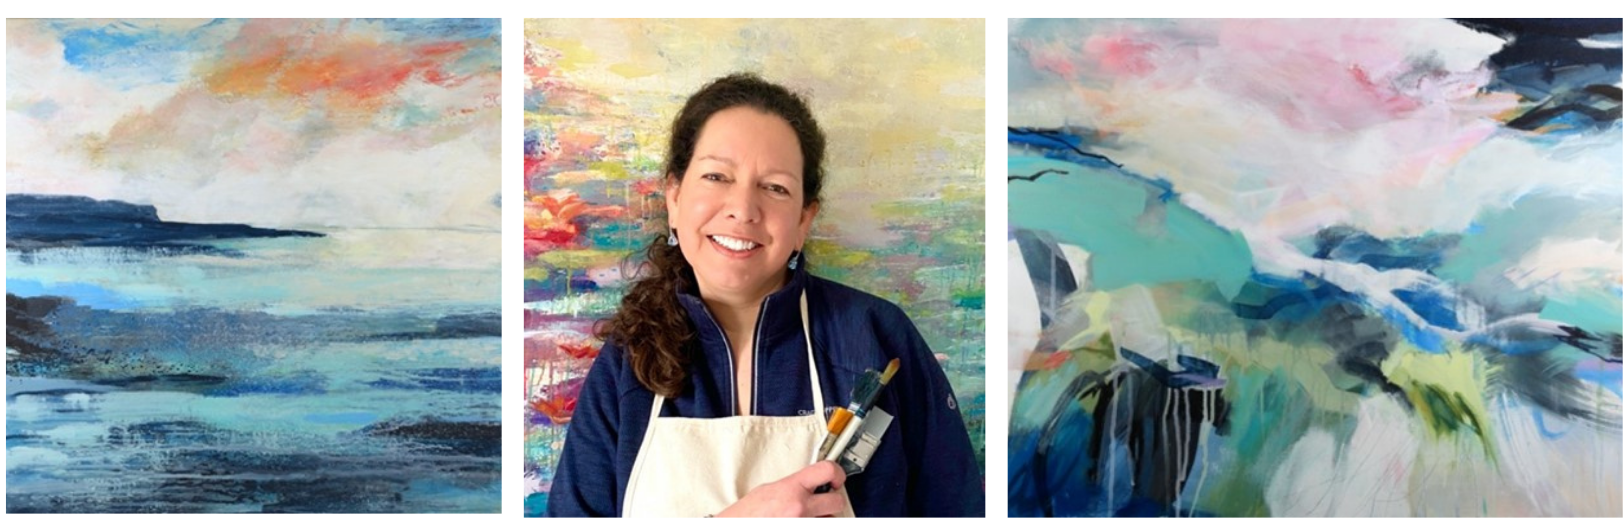 Artist Sarah Boden with three colourful paintings